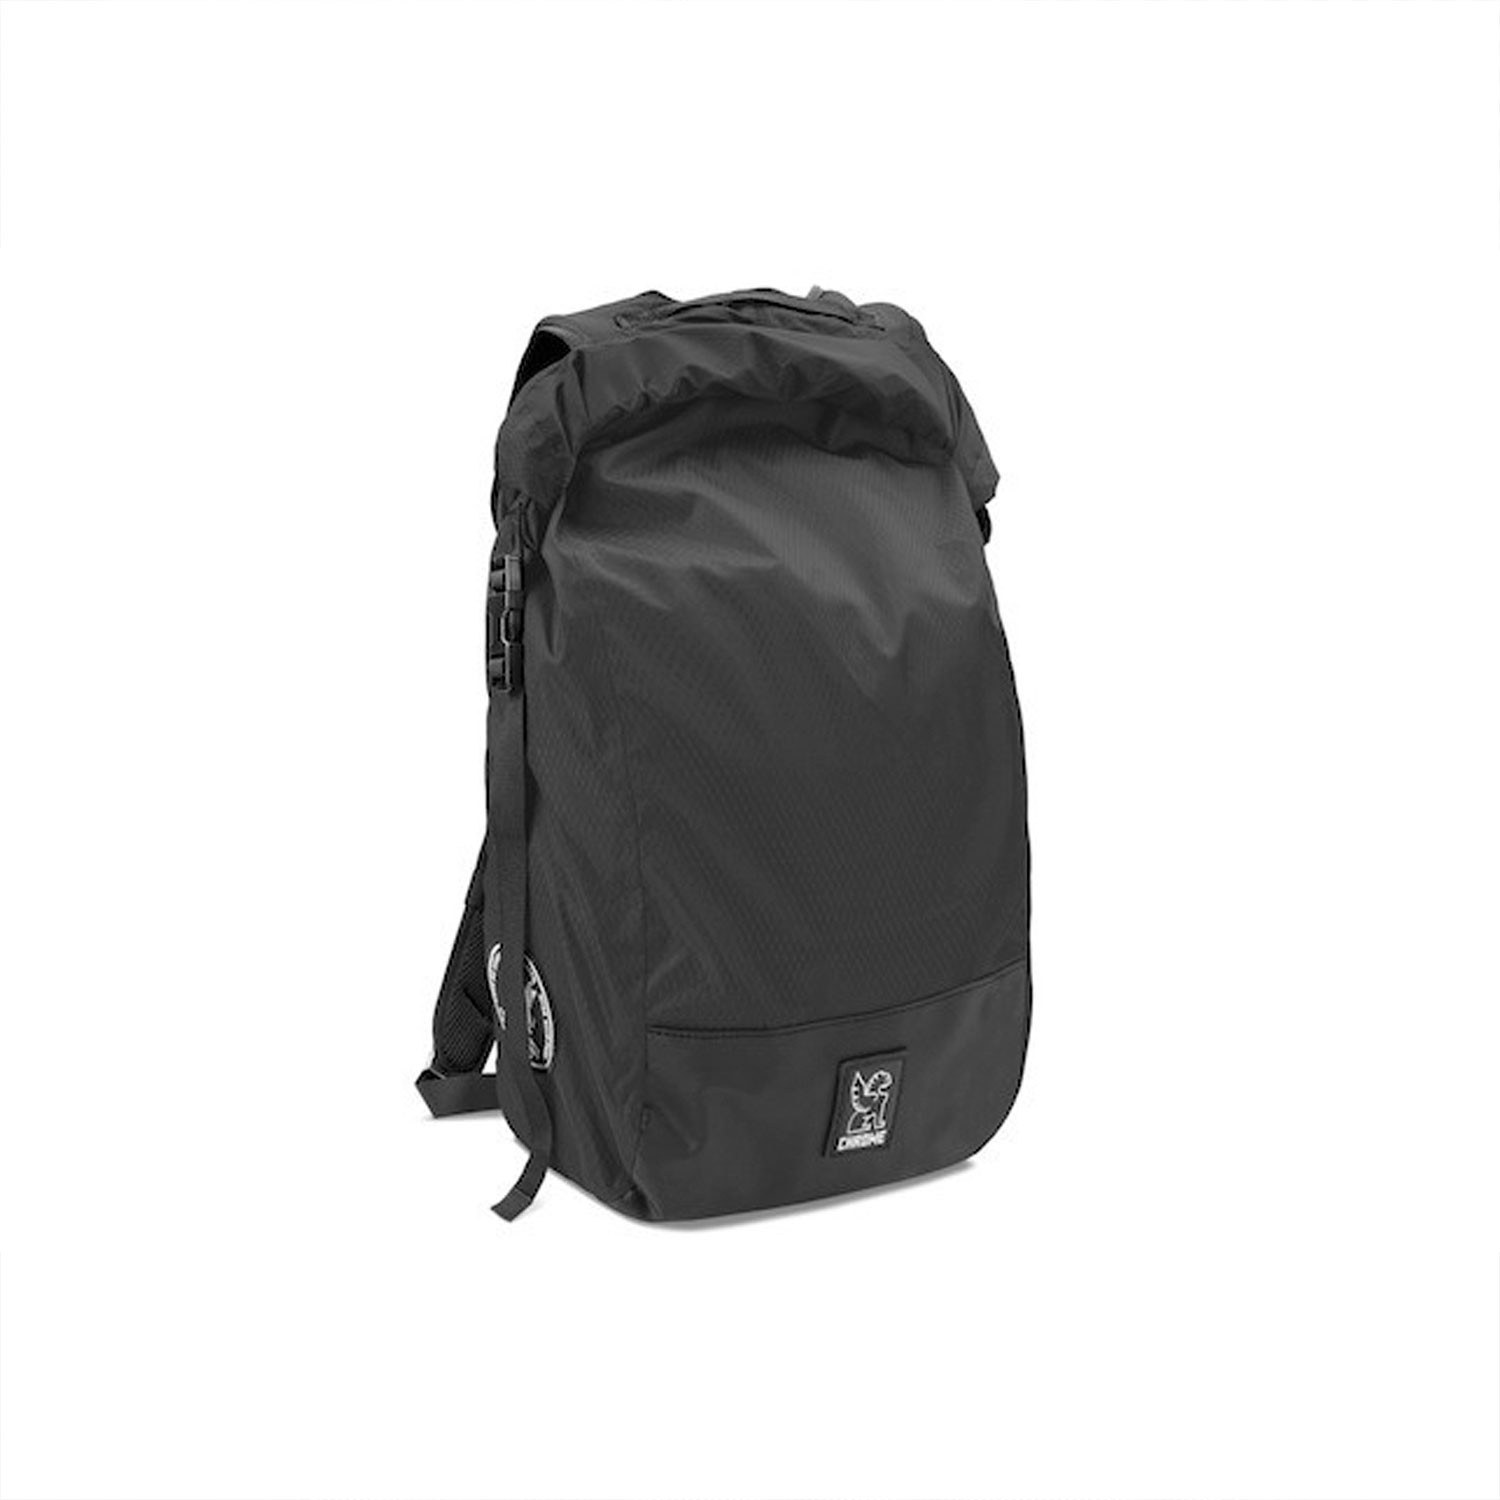 Chrome Cardiel O.R.P. Black Backpack